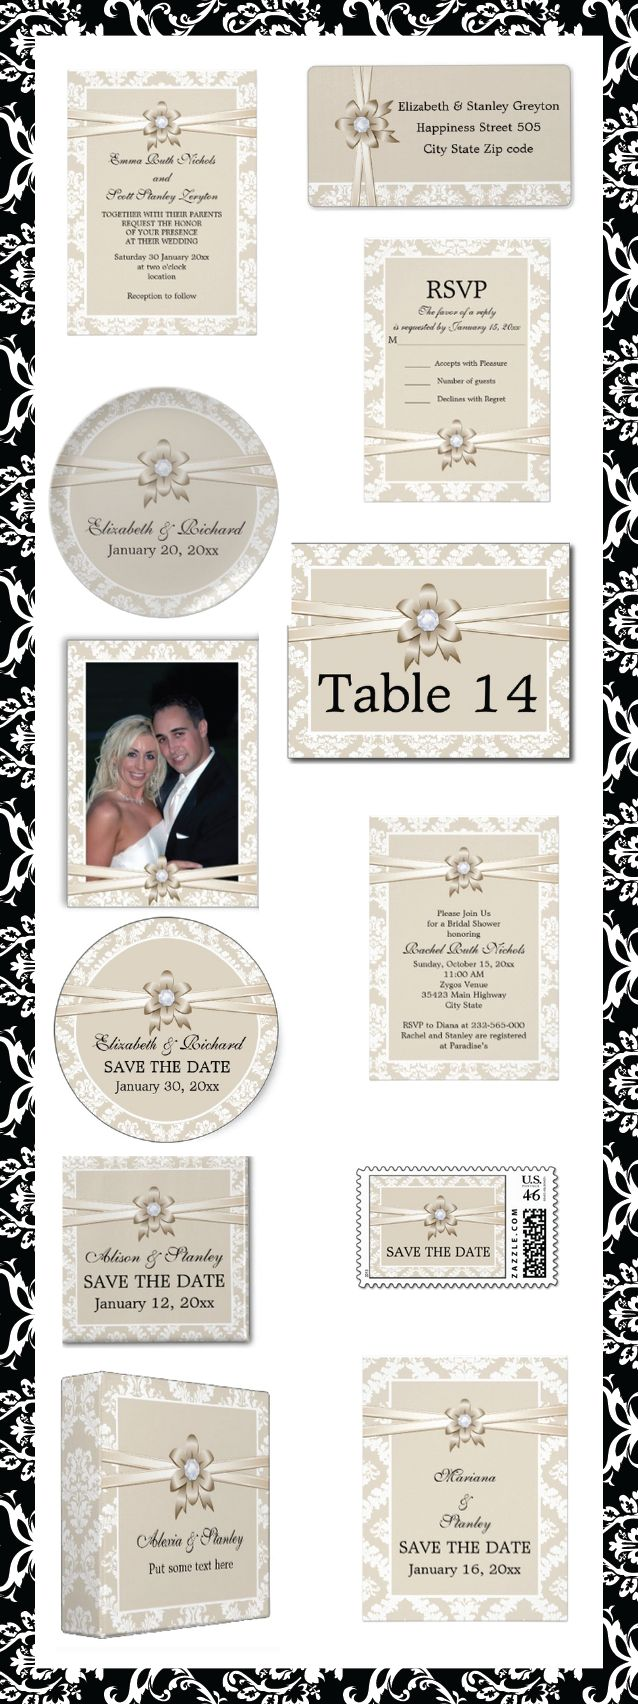 Damask border with beige ribbon and flower